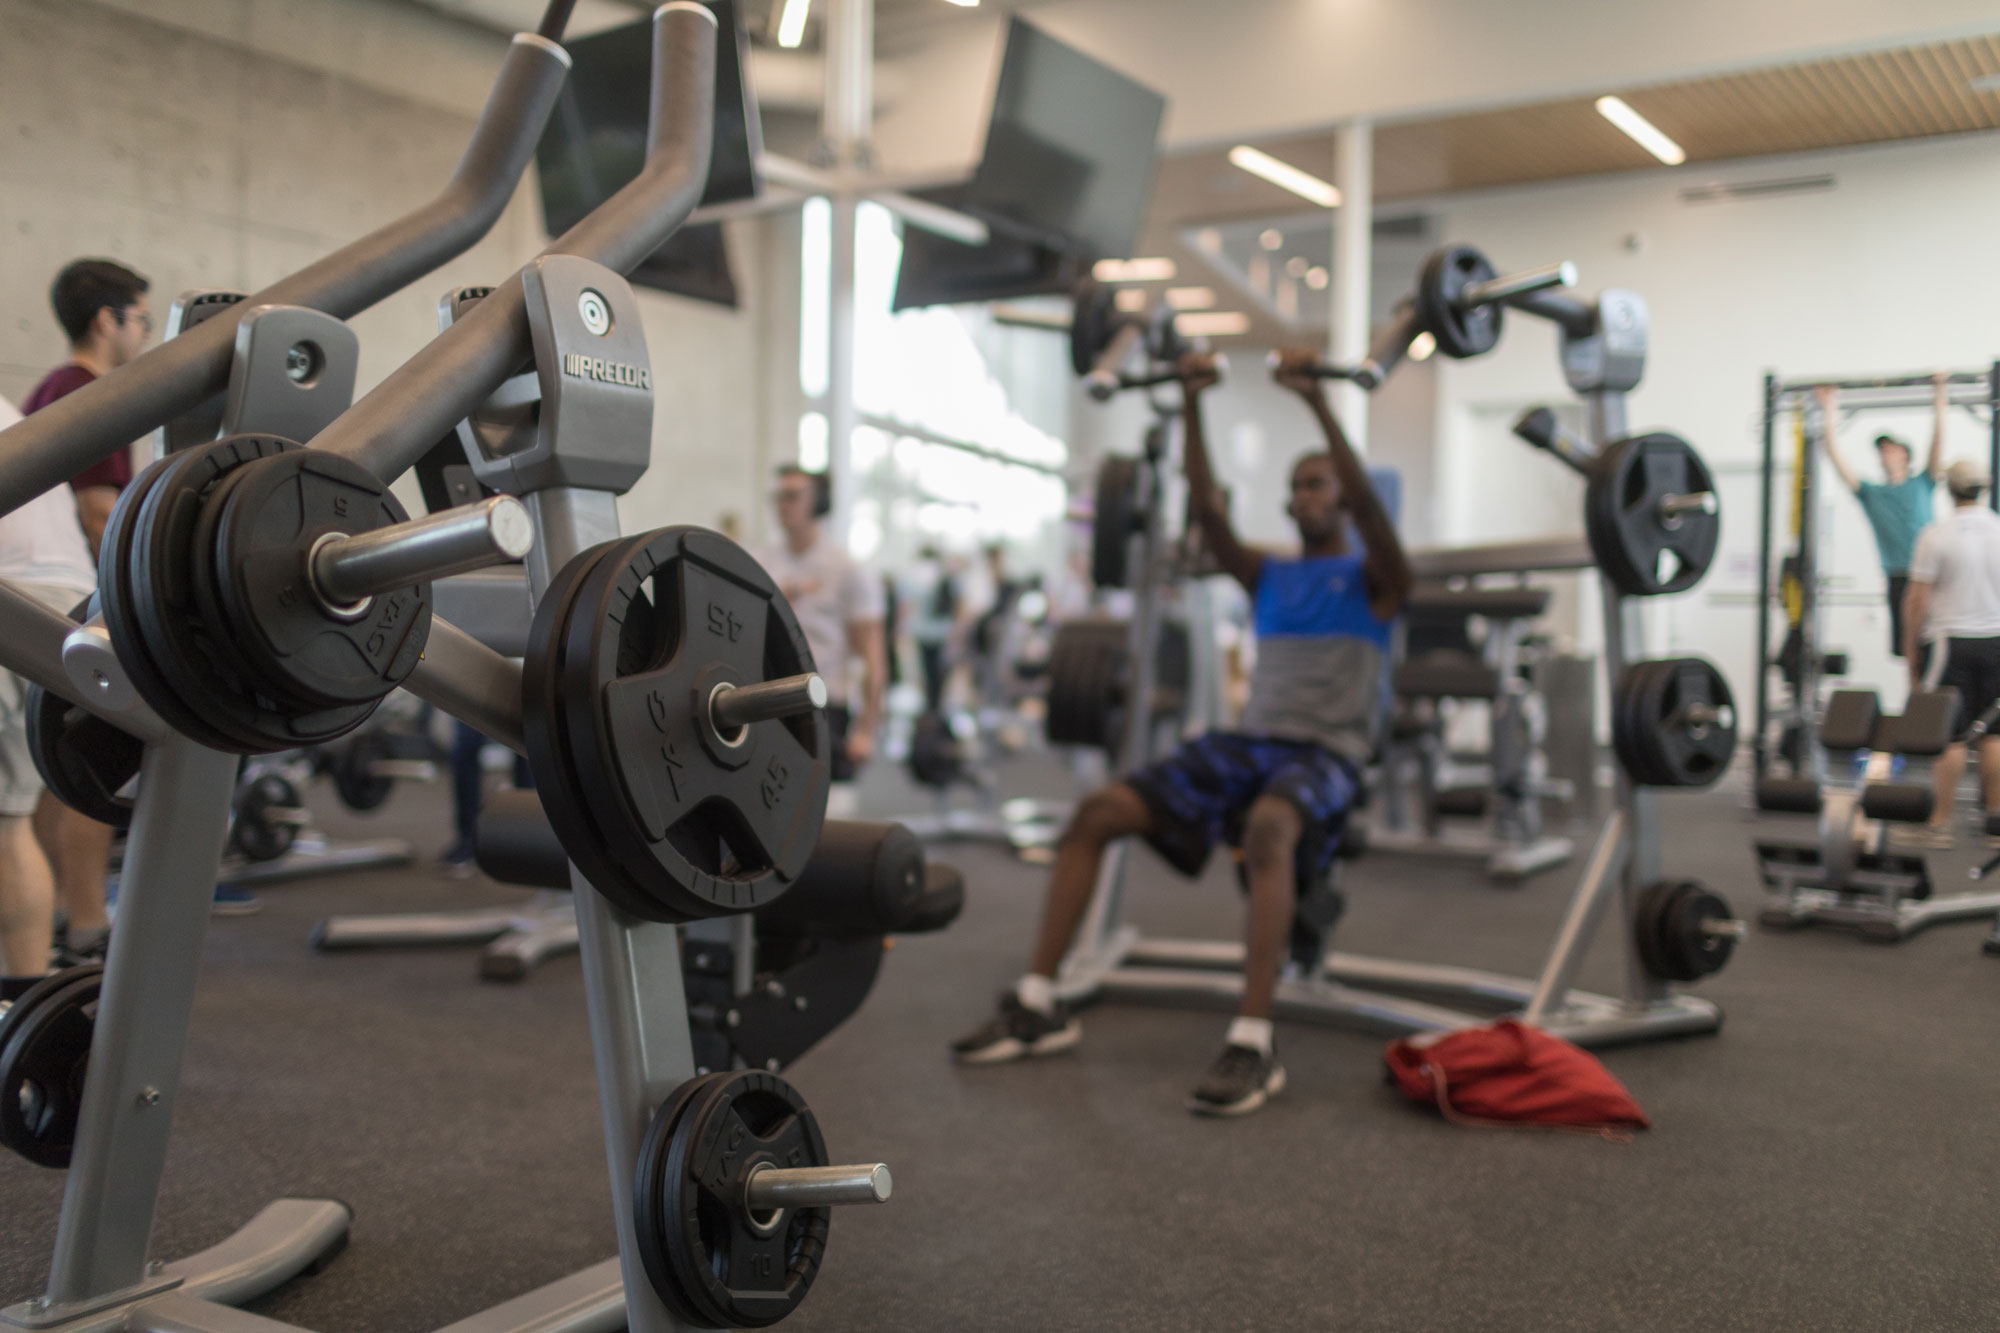 Fitness Center - Florida Polytechnic University